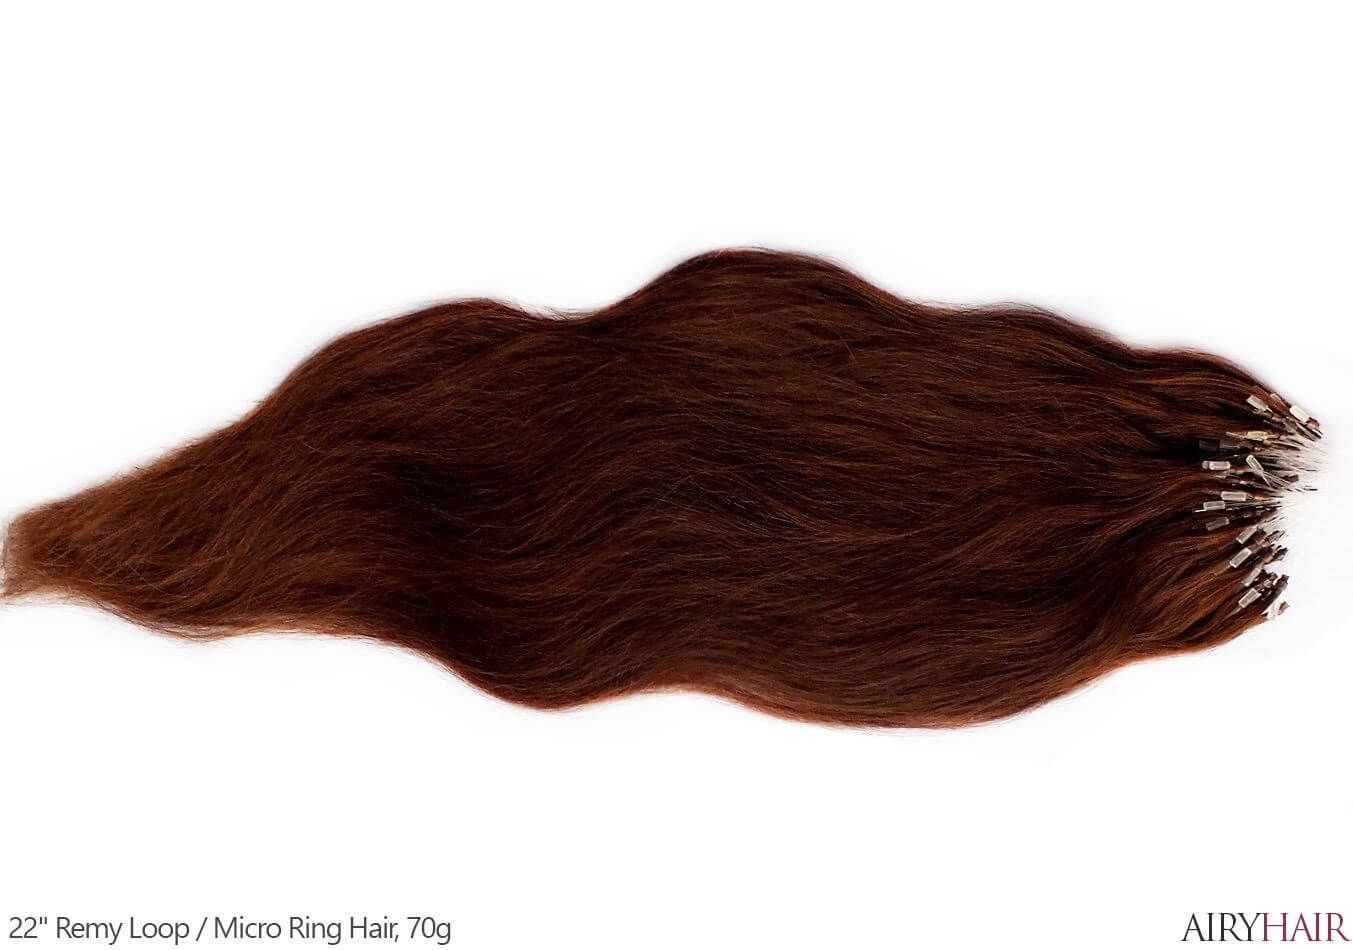 Remy Micro Link Loop Hair Extensions (With images) | Loop hair extensions